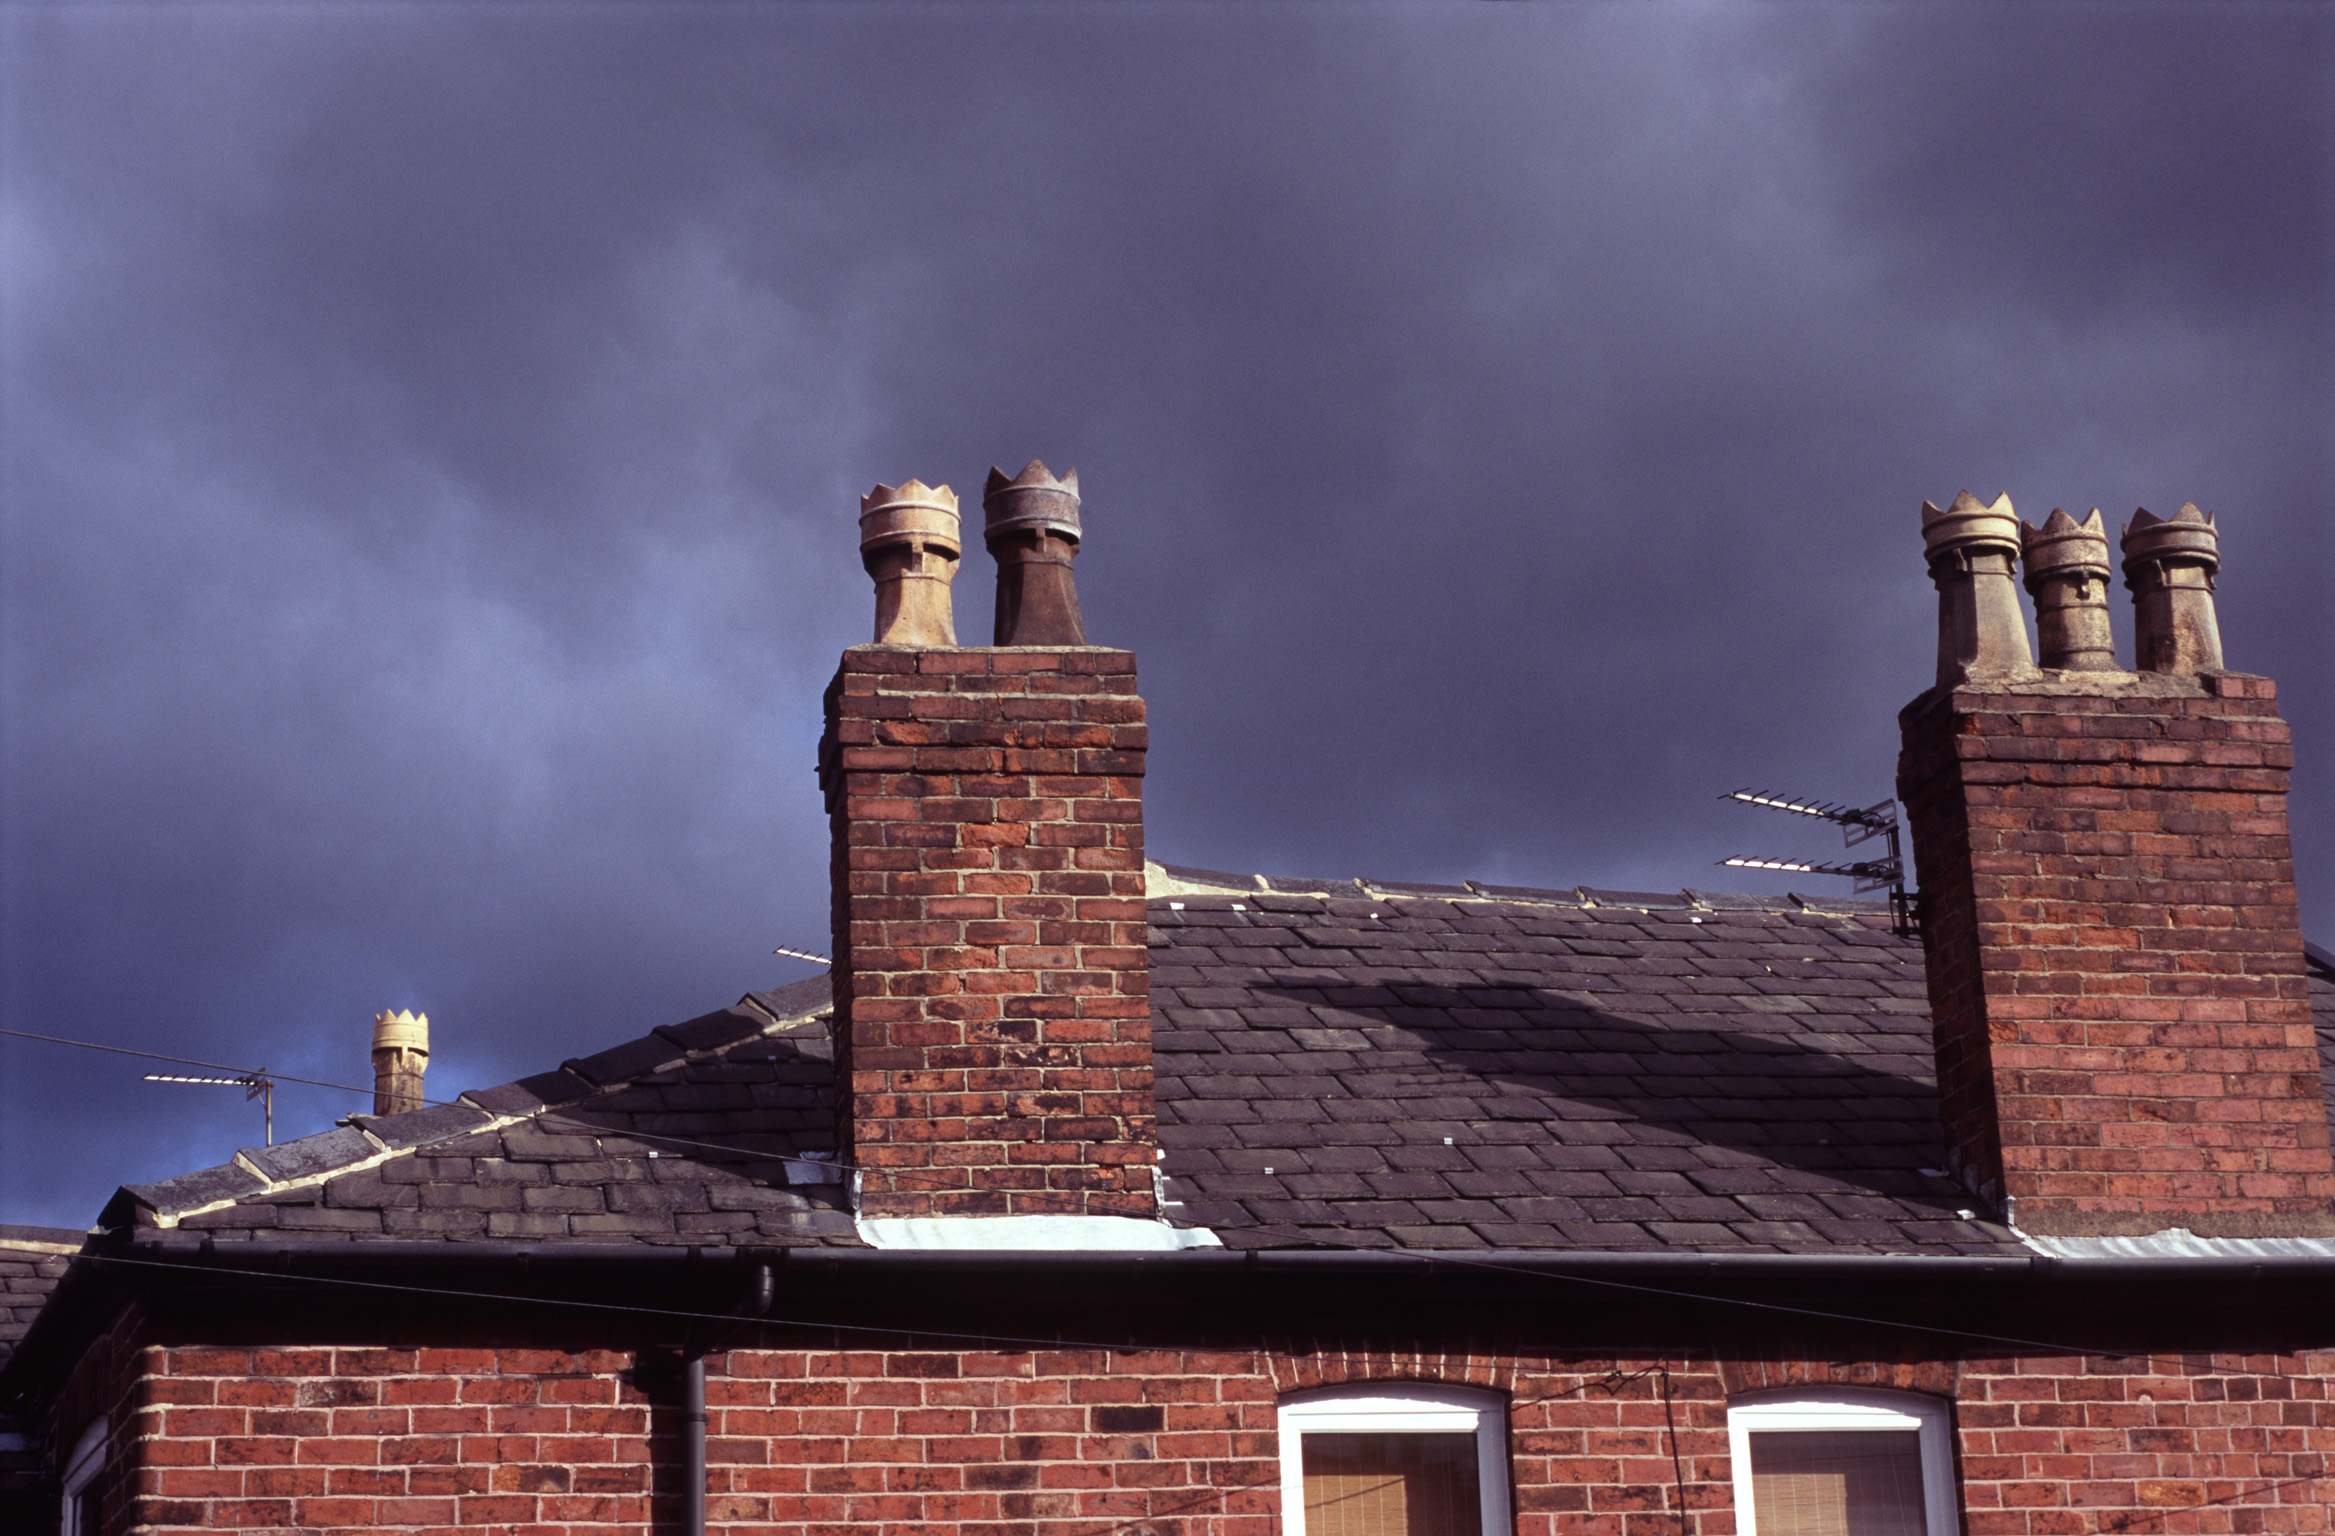 Red brick chimney pots on old terraced houses in Stockport against an ominous cloudy sky